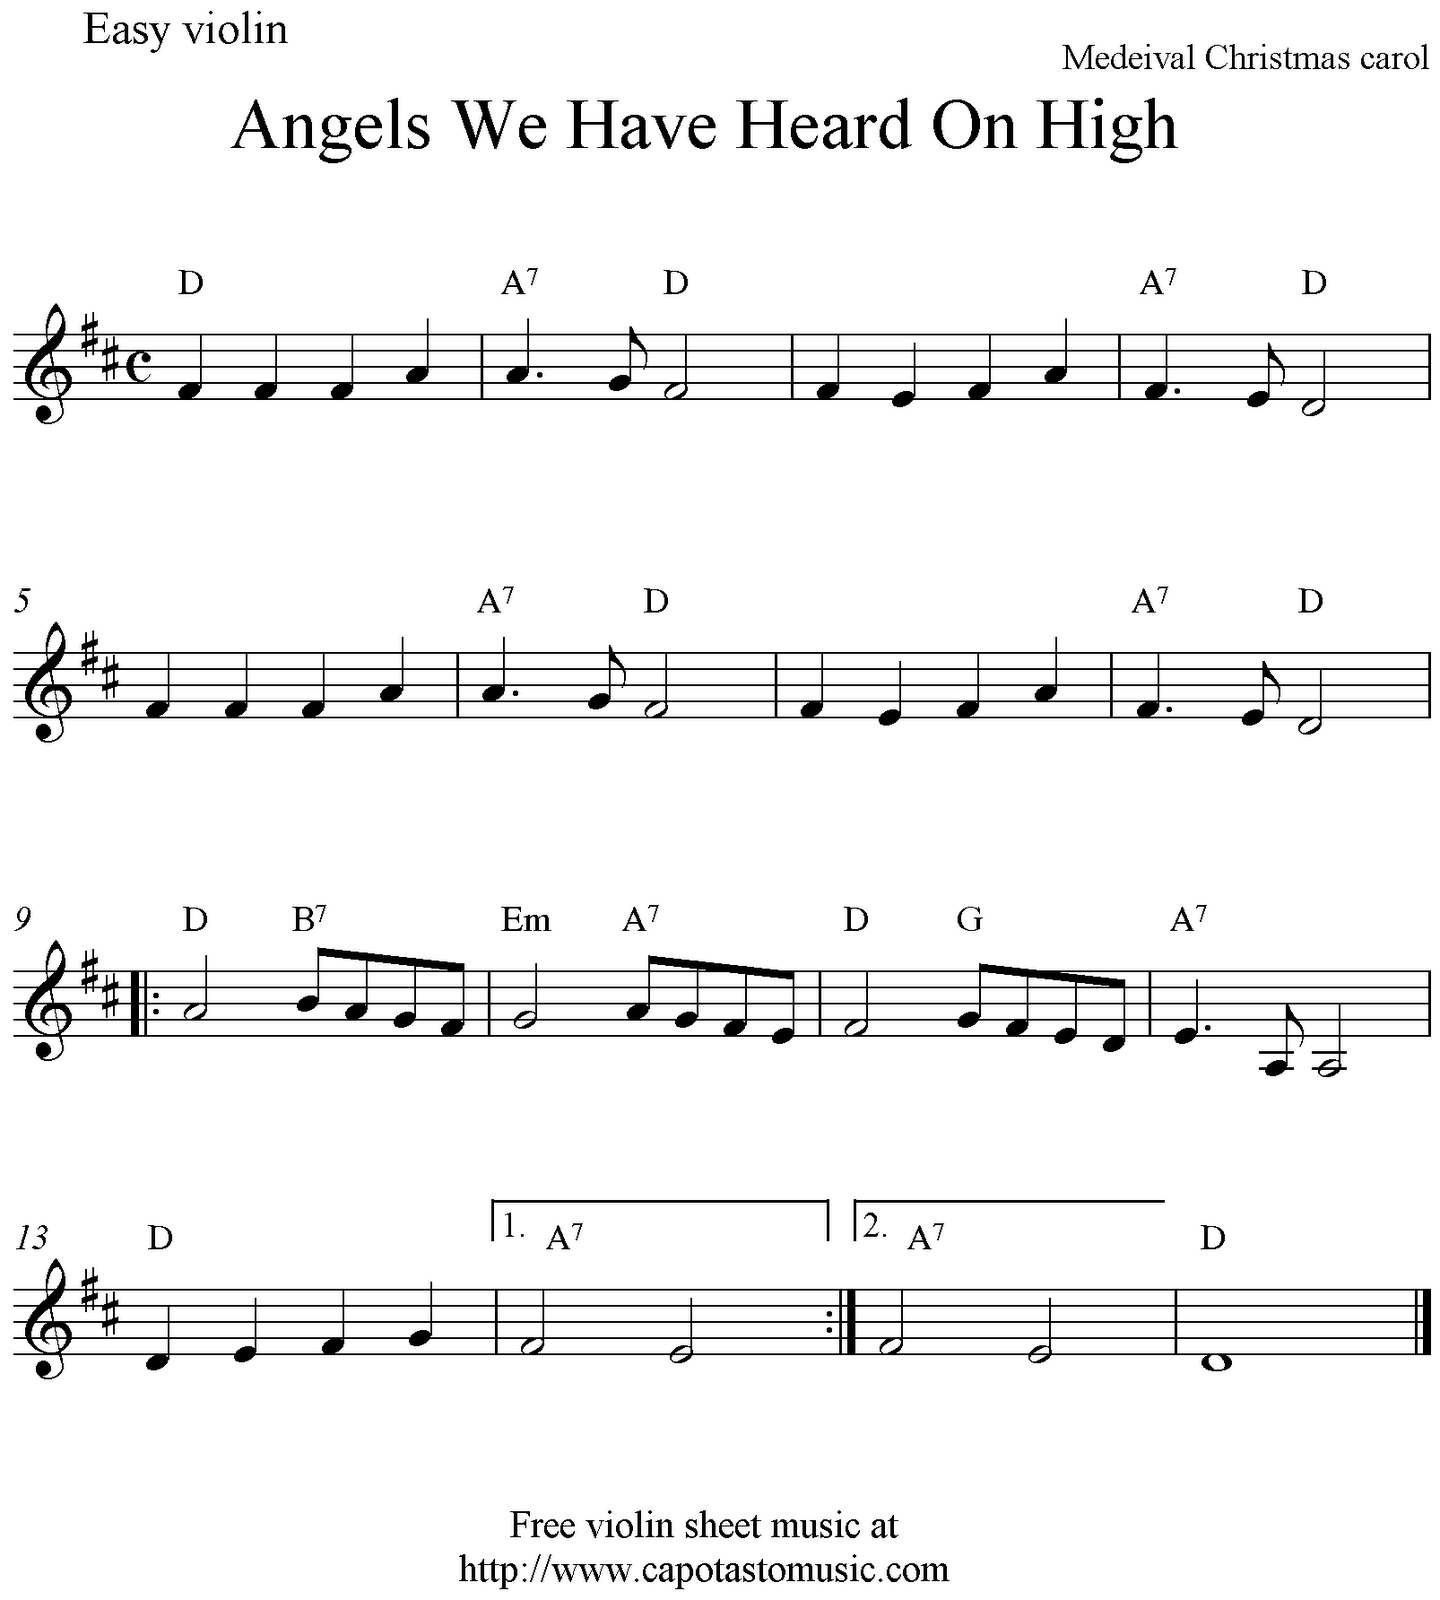 Free Sheet Music Scores Angels We Have Heard On High Free Christmas Violin Sheet Music Notes